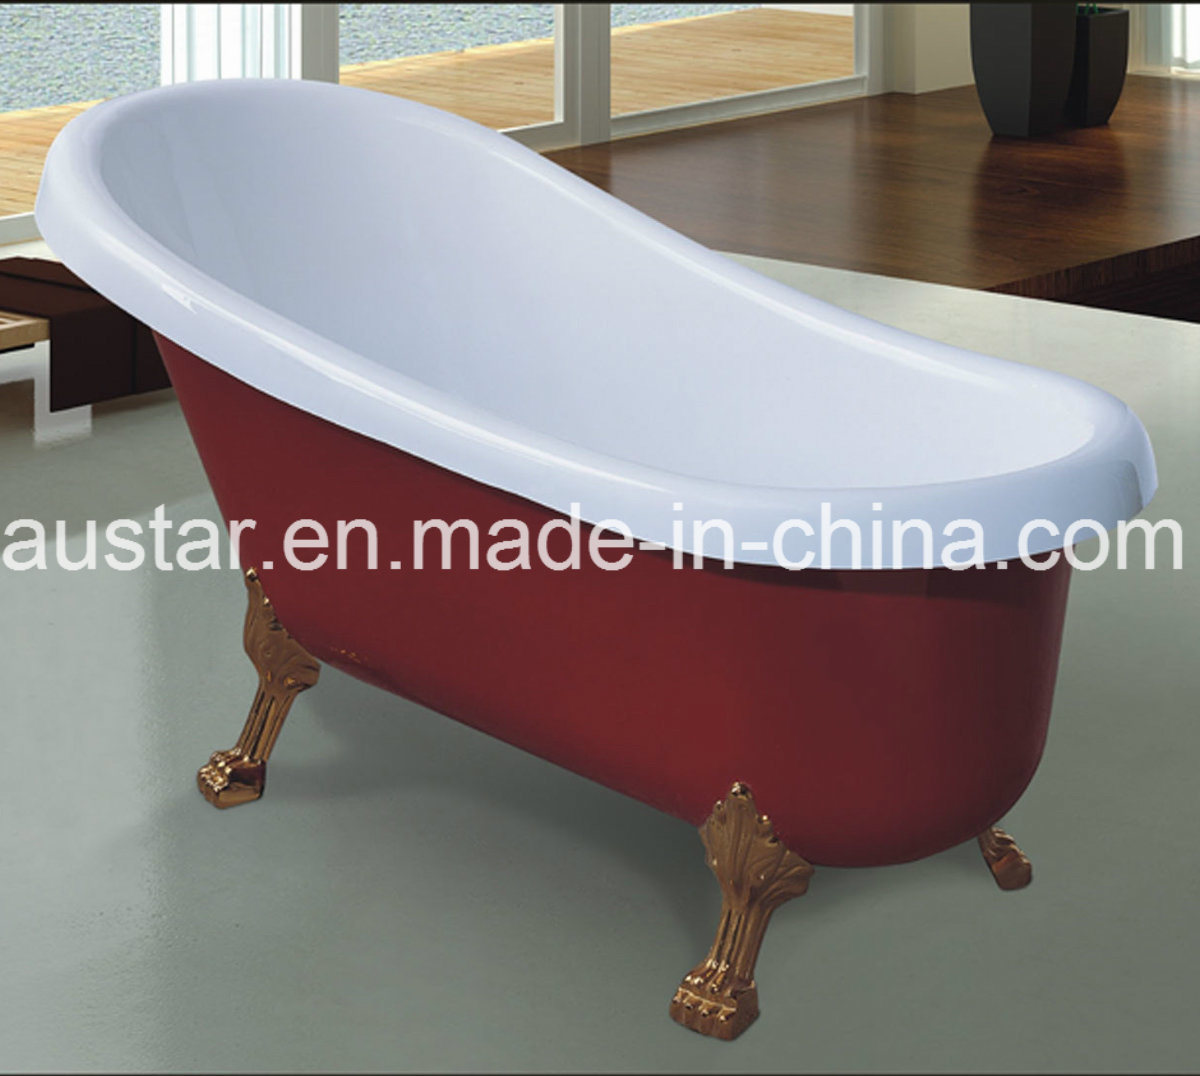 New Design 1700mm Red Classic Bathtub SPA for Lady with Multi Sizes (AT-0913-1)